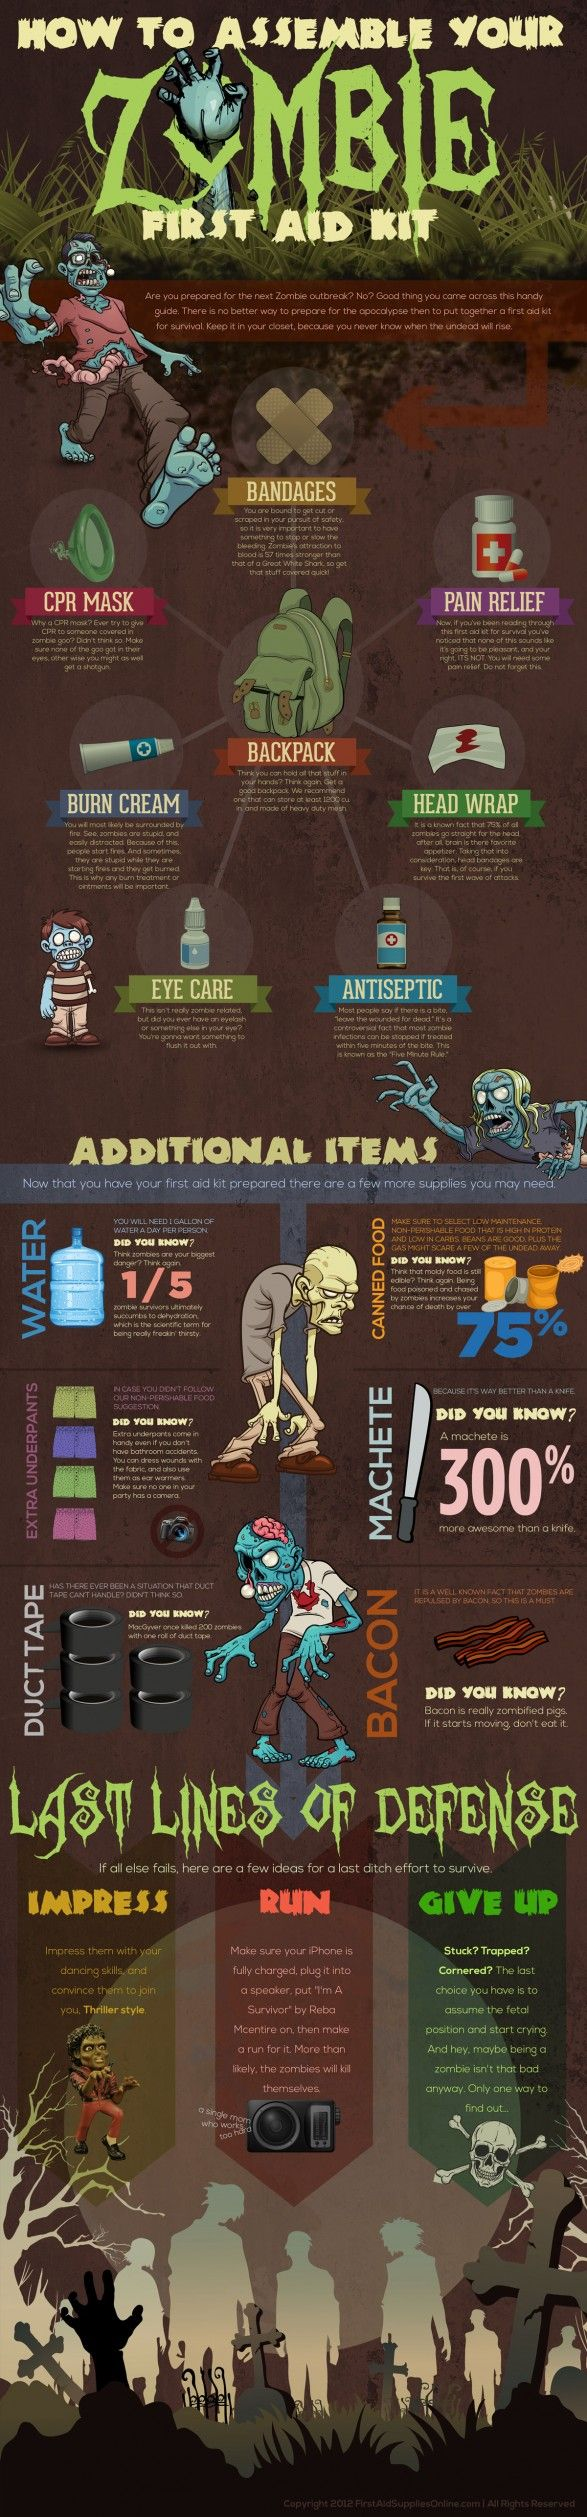 How To Assemble Your Zombie First Aid Kit...Well, you never know when this may come in handy.